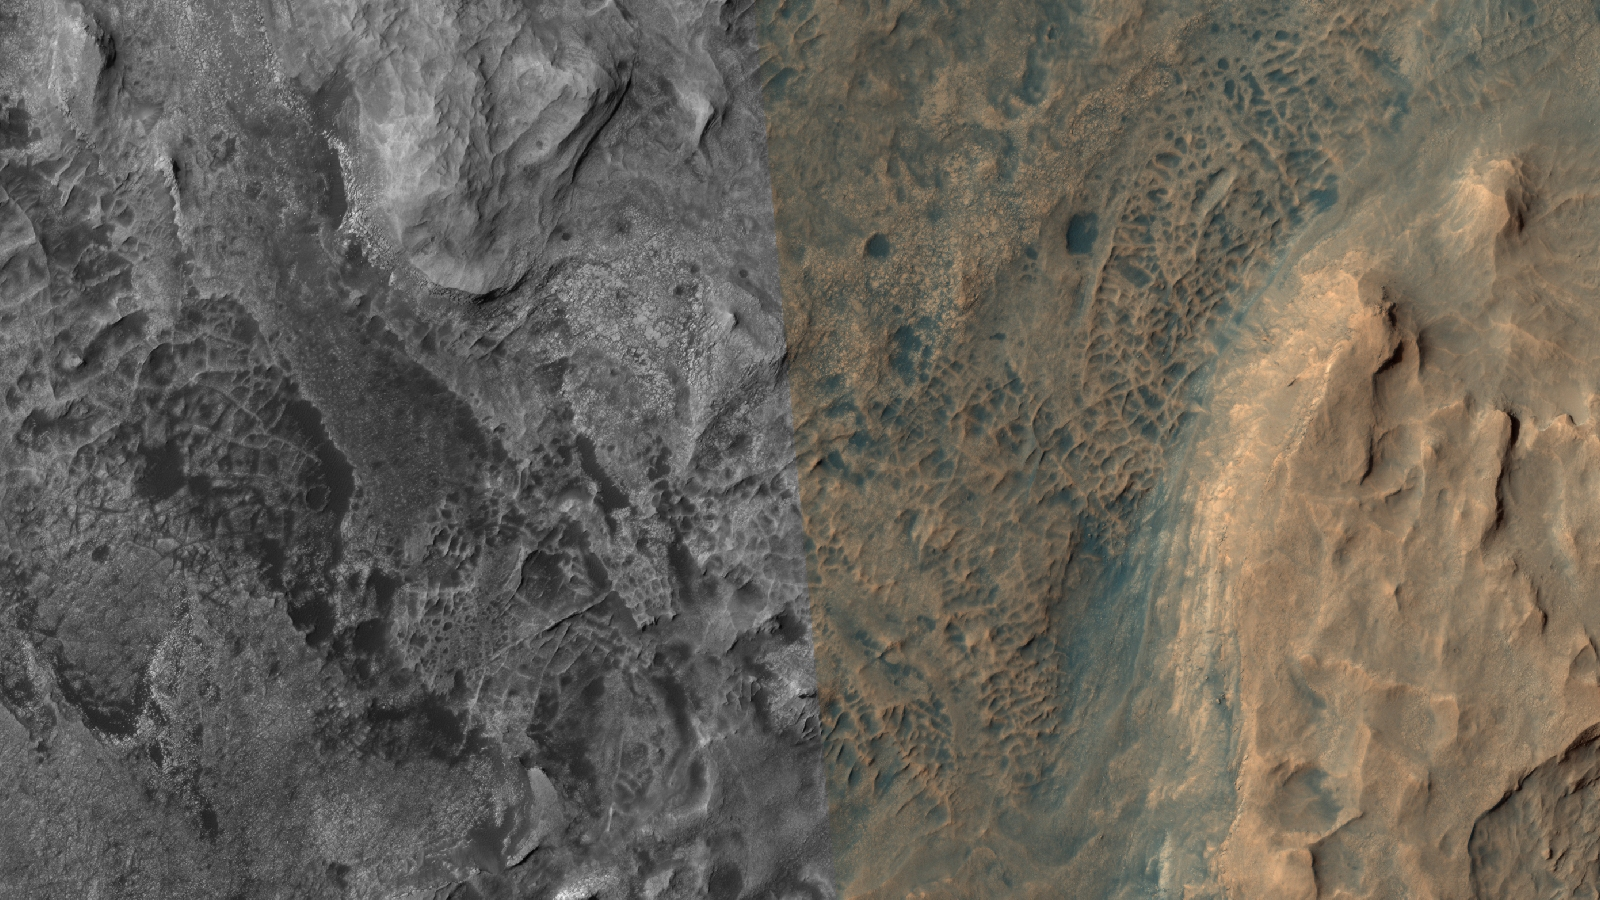 Puebloan ruins and giant monolith found on Mars – Mars ...